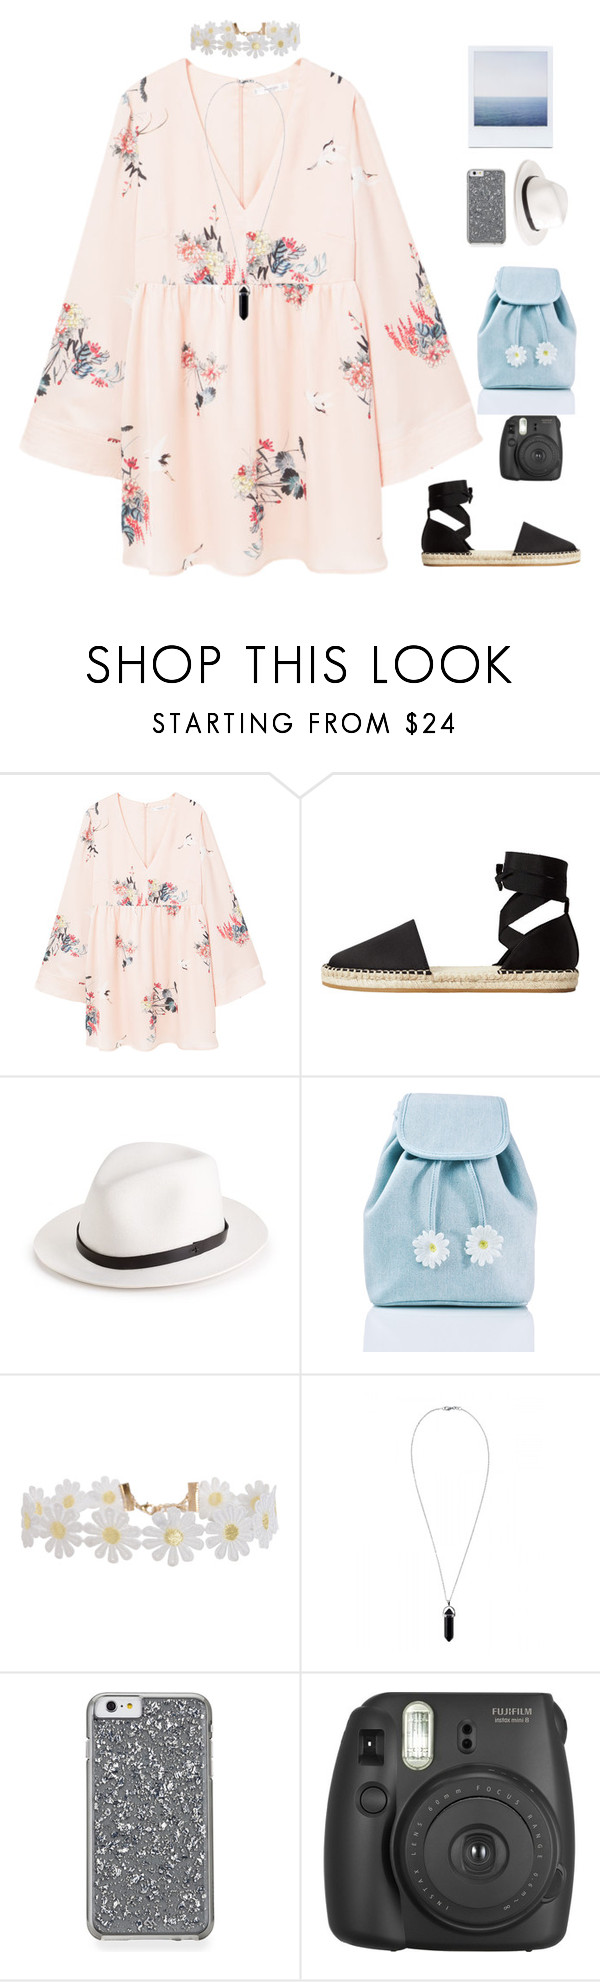 """""""going to ..."""" by remooooo ❤ liked on Polyvore featuring MANGO, rag & bone, Sugarbaby, Humble Chic and Fujifilm"""